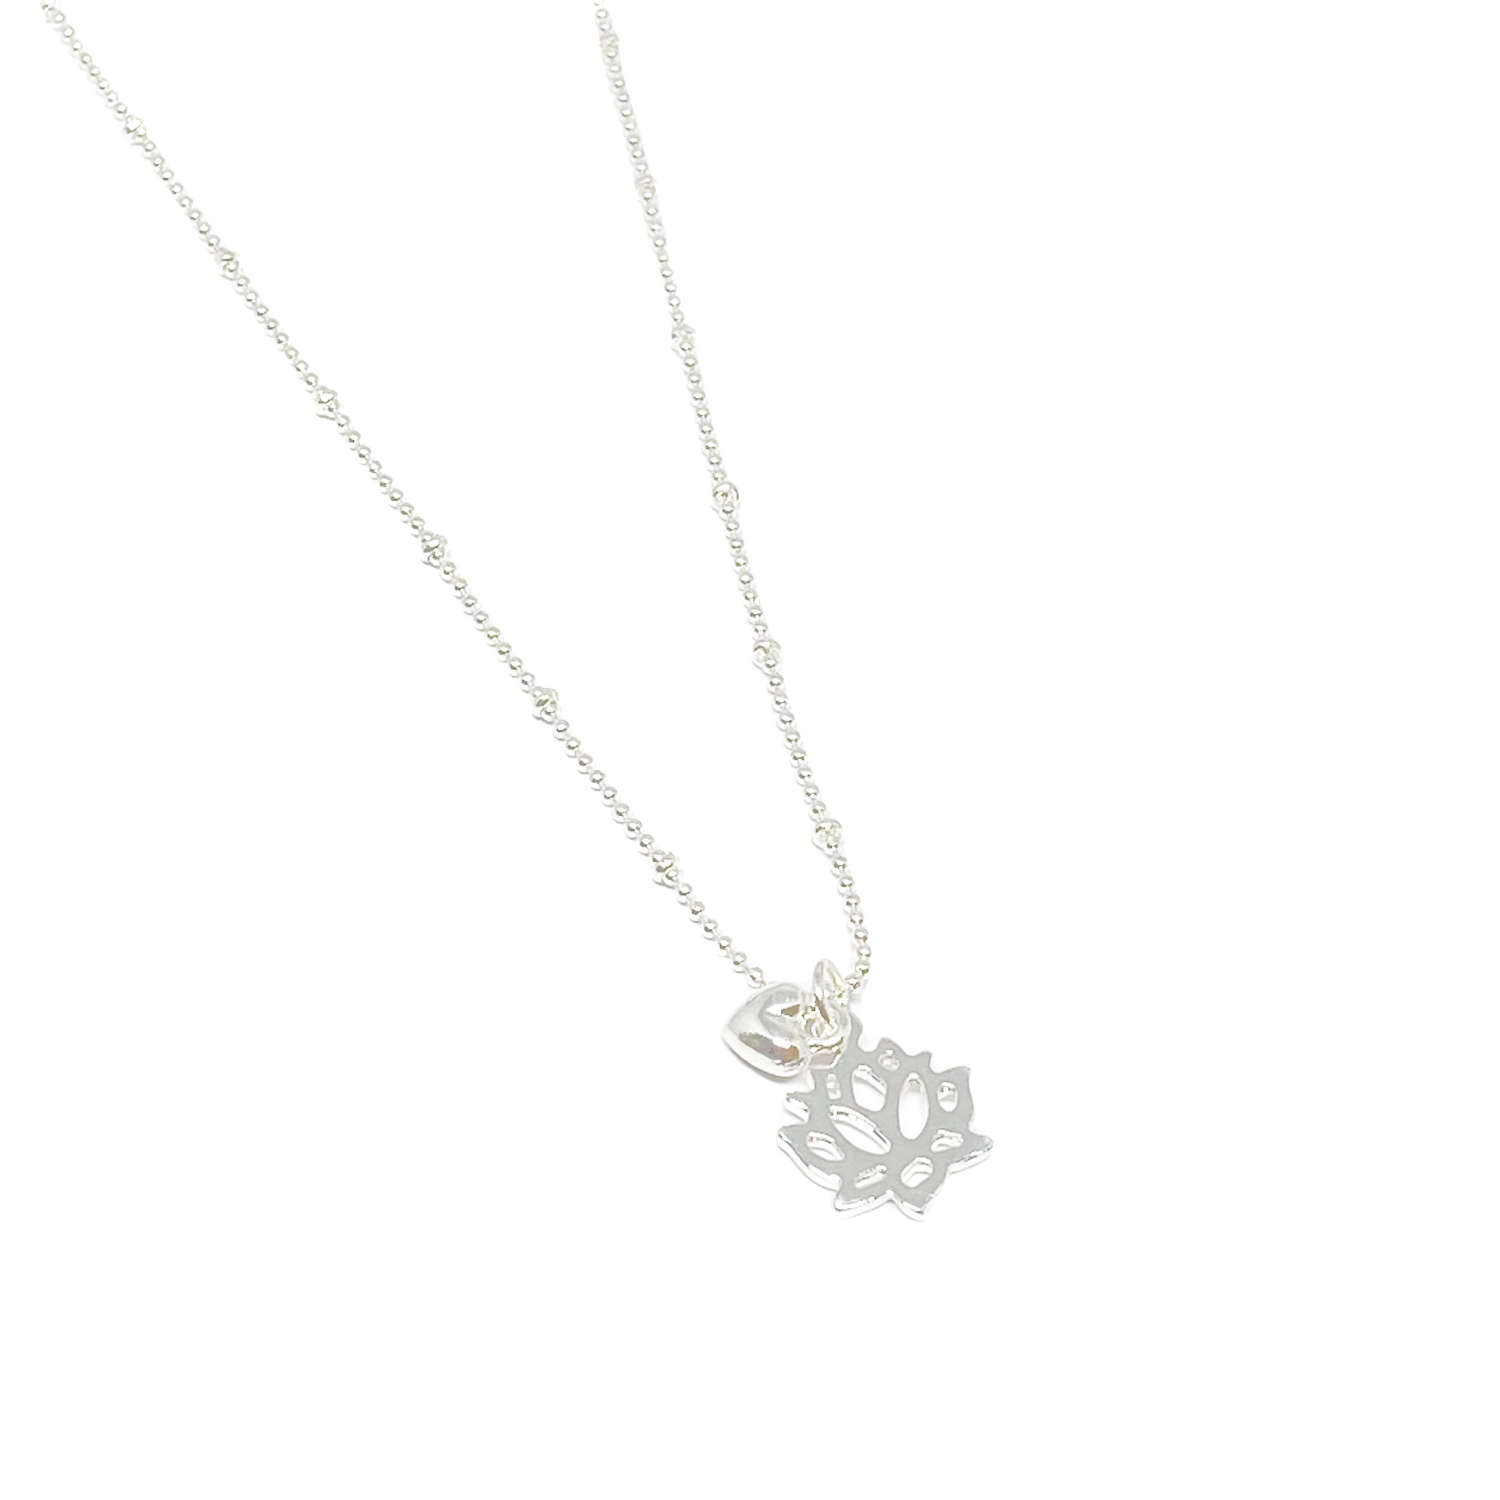 India Lotus Flower Necklace - Silver